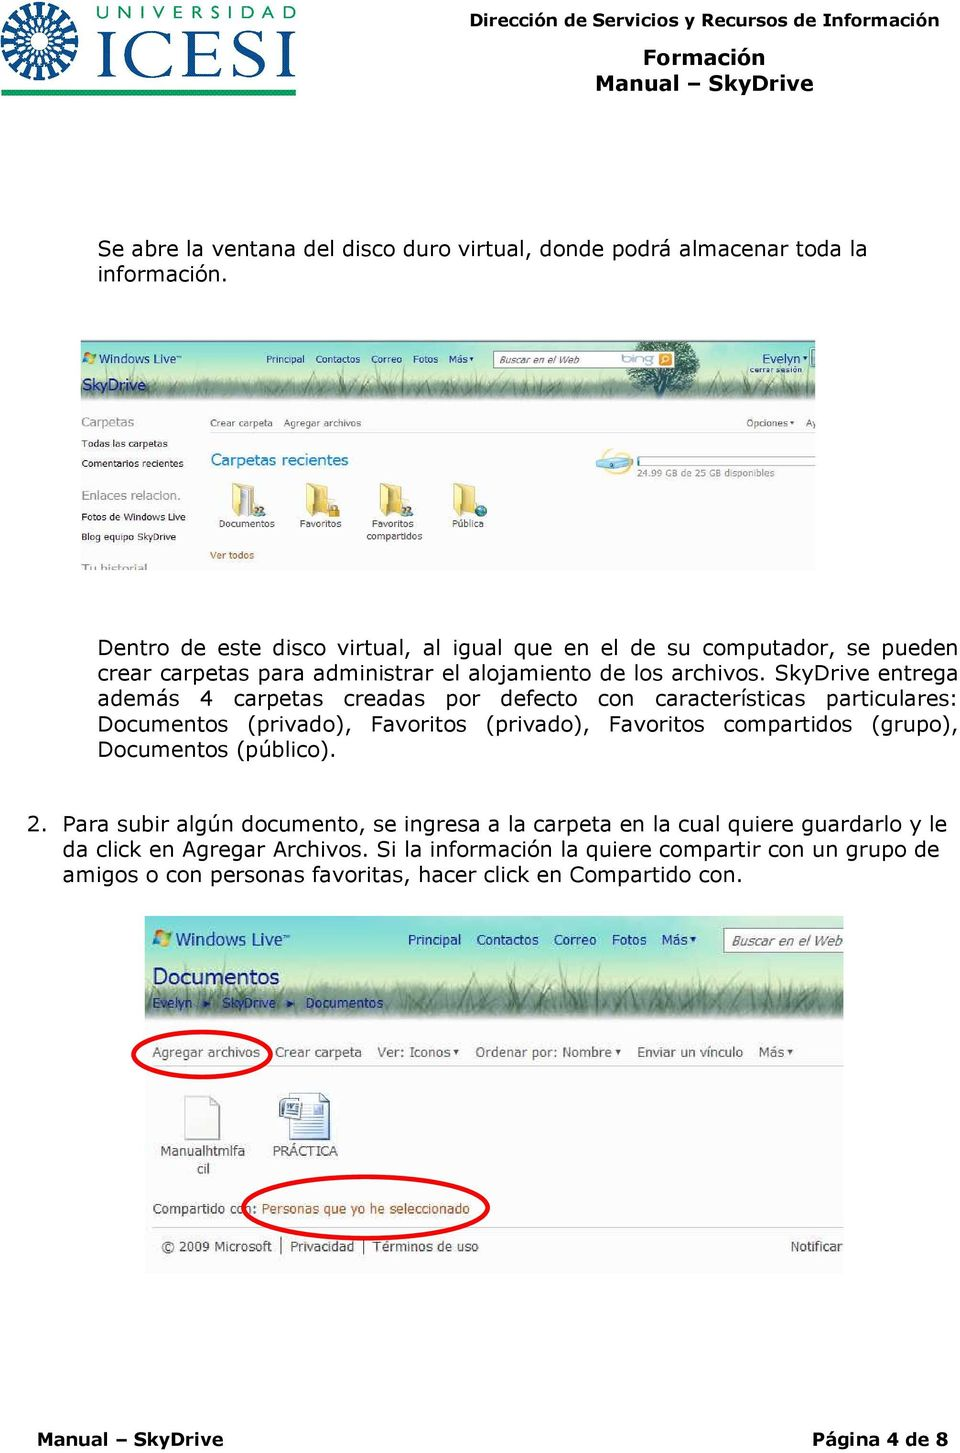 SkyDrive entrega además 4 carpetas creadas por defecto con características particulares: Documentos (privado), Favoritos (privado), Favoritos compartidos (grupo),